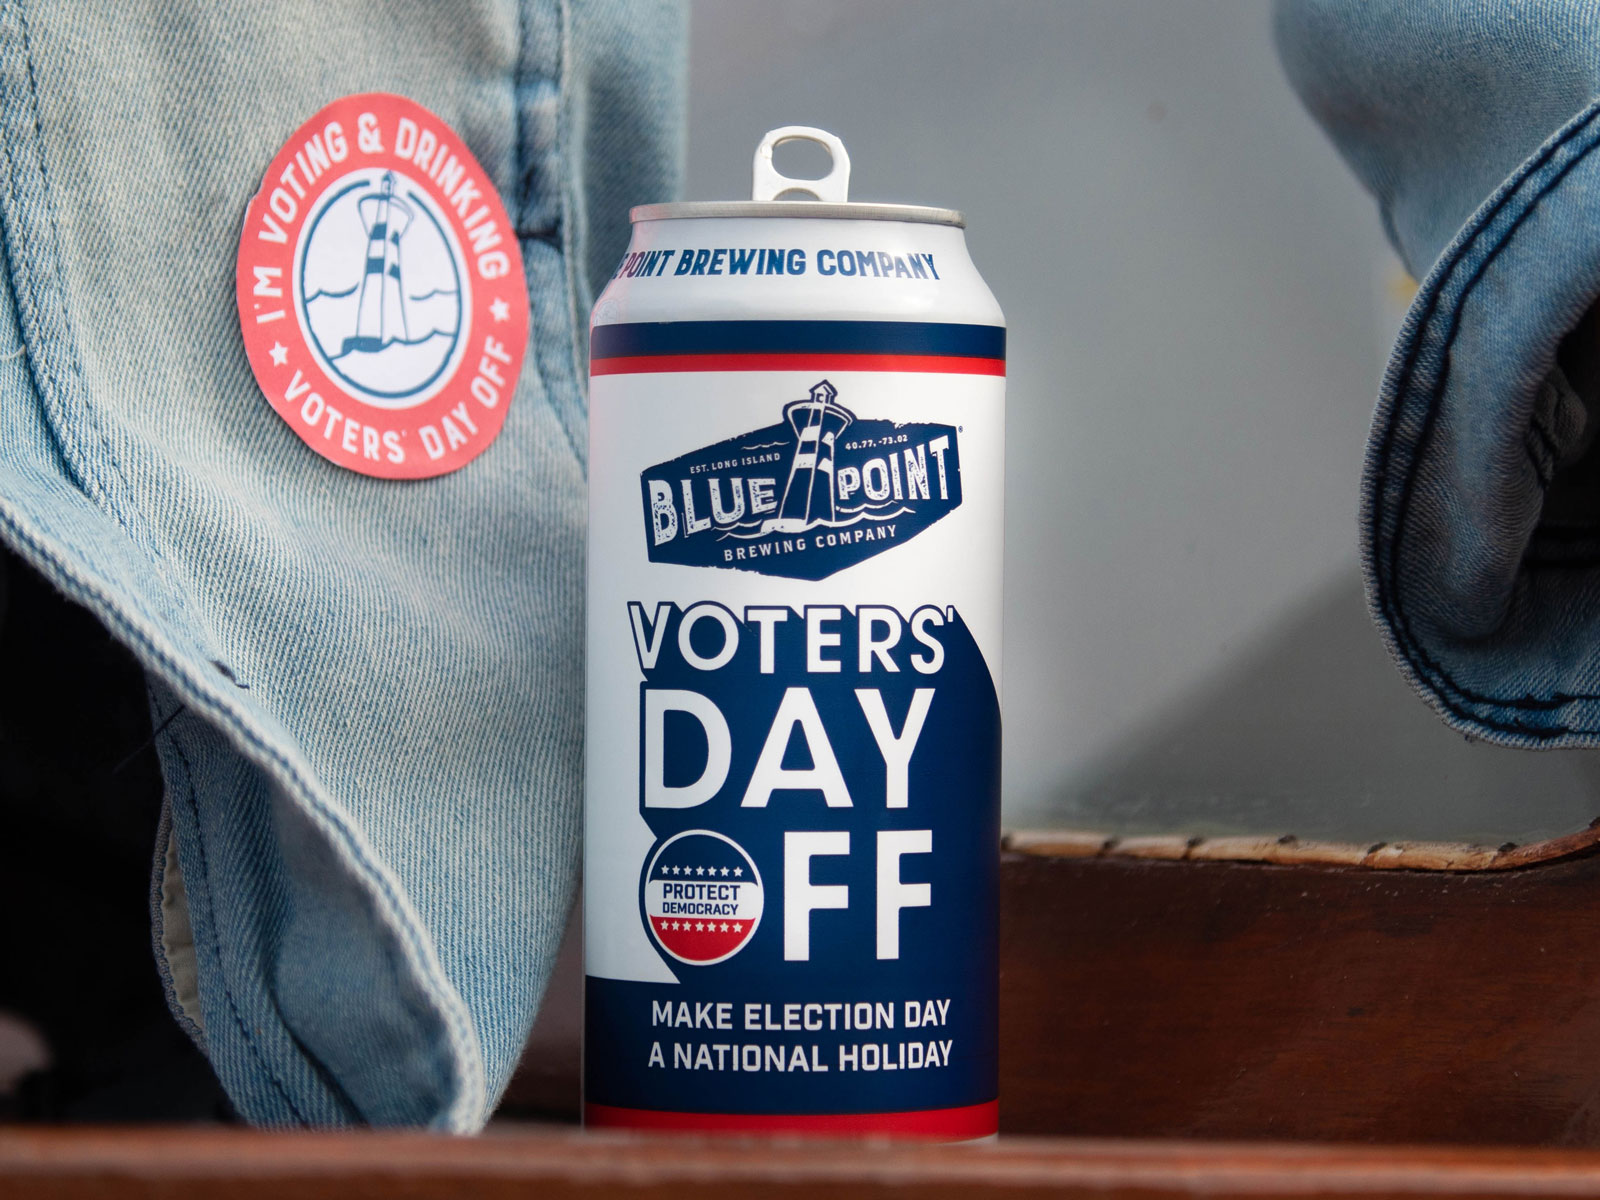 Blue Point's Voters Day Off IPA